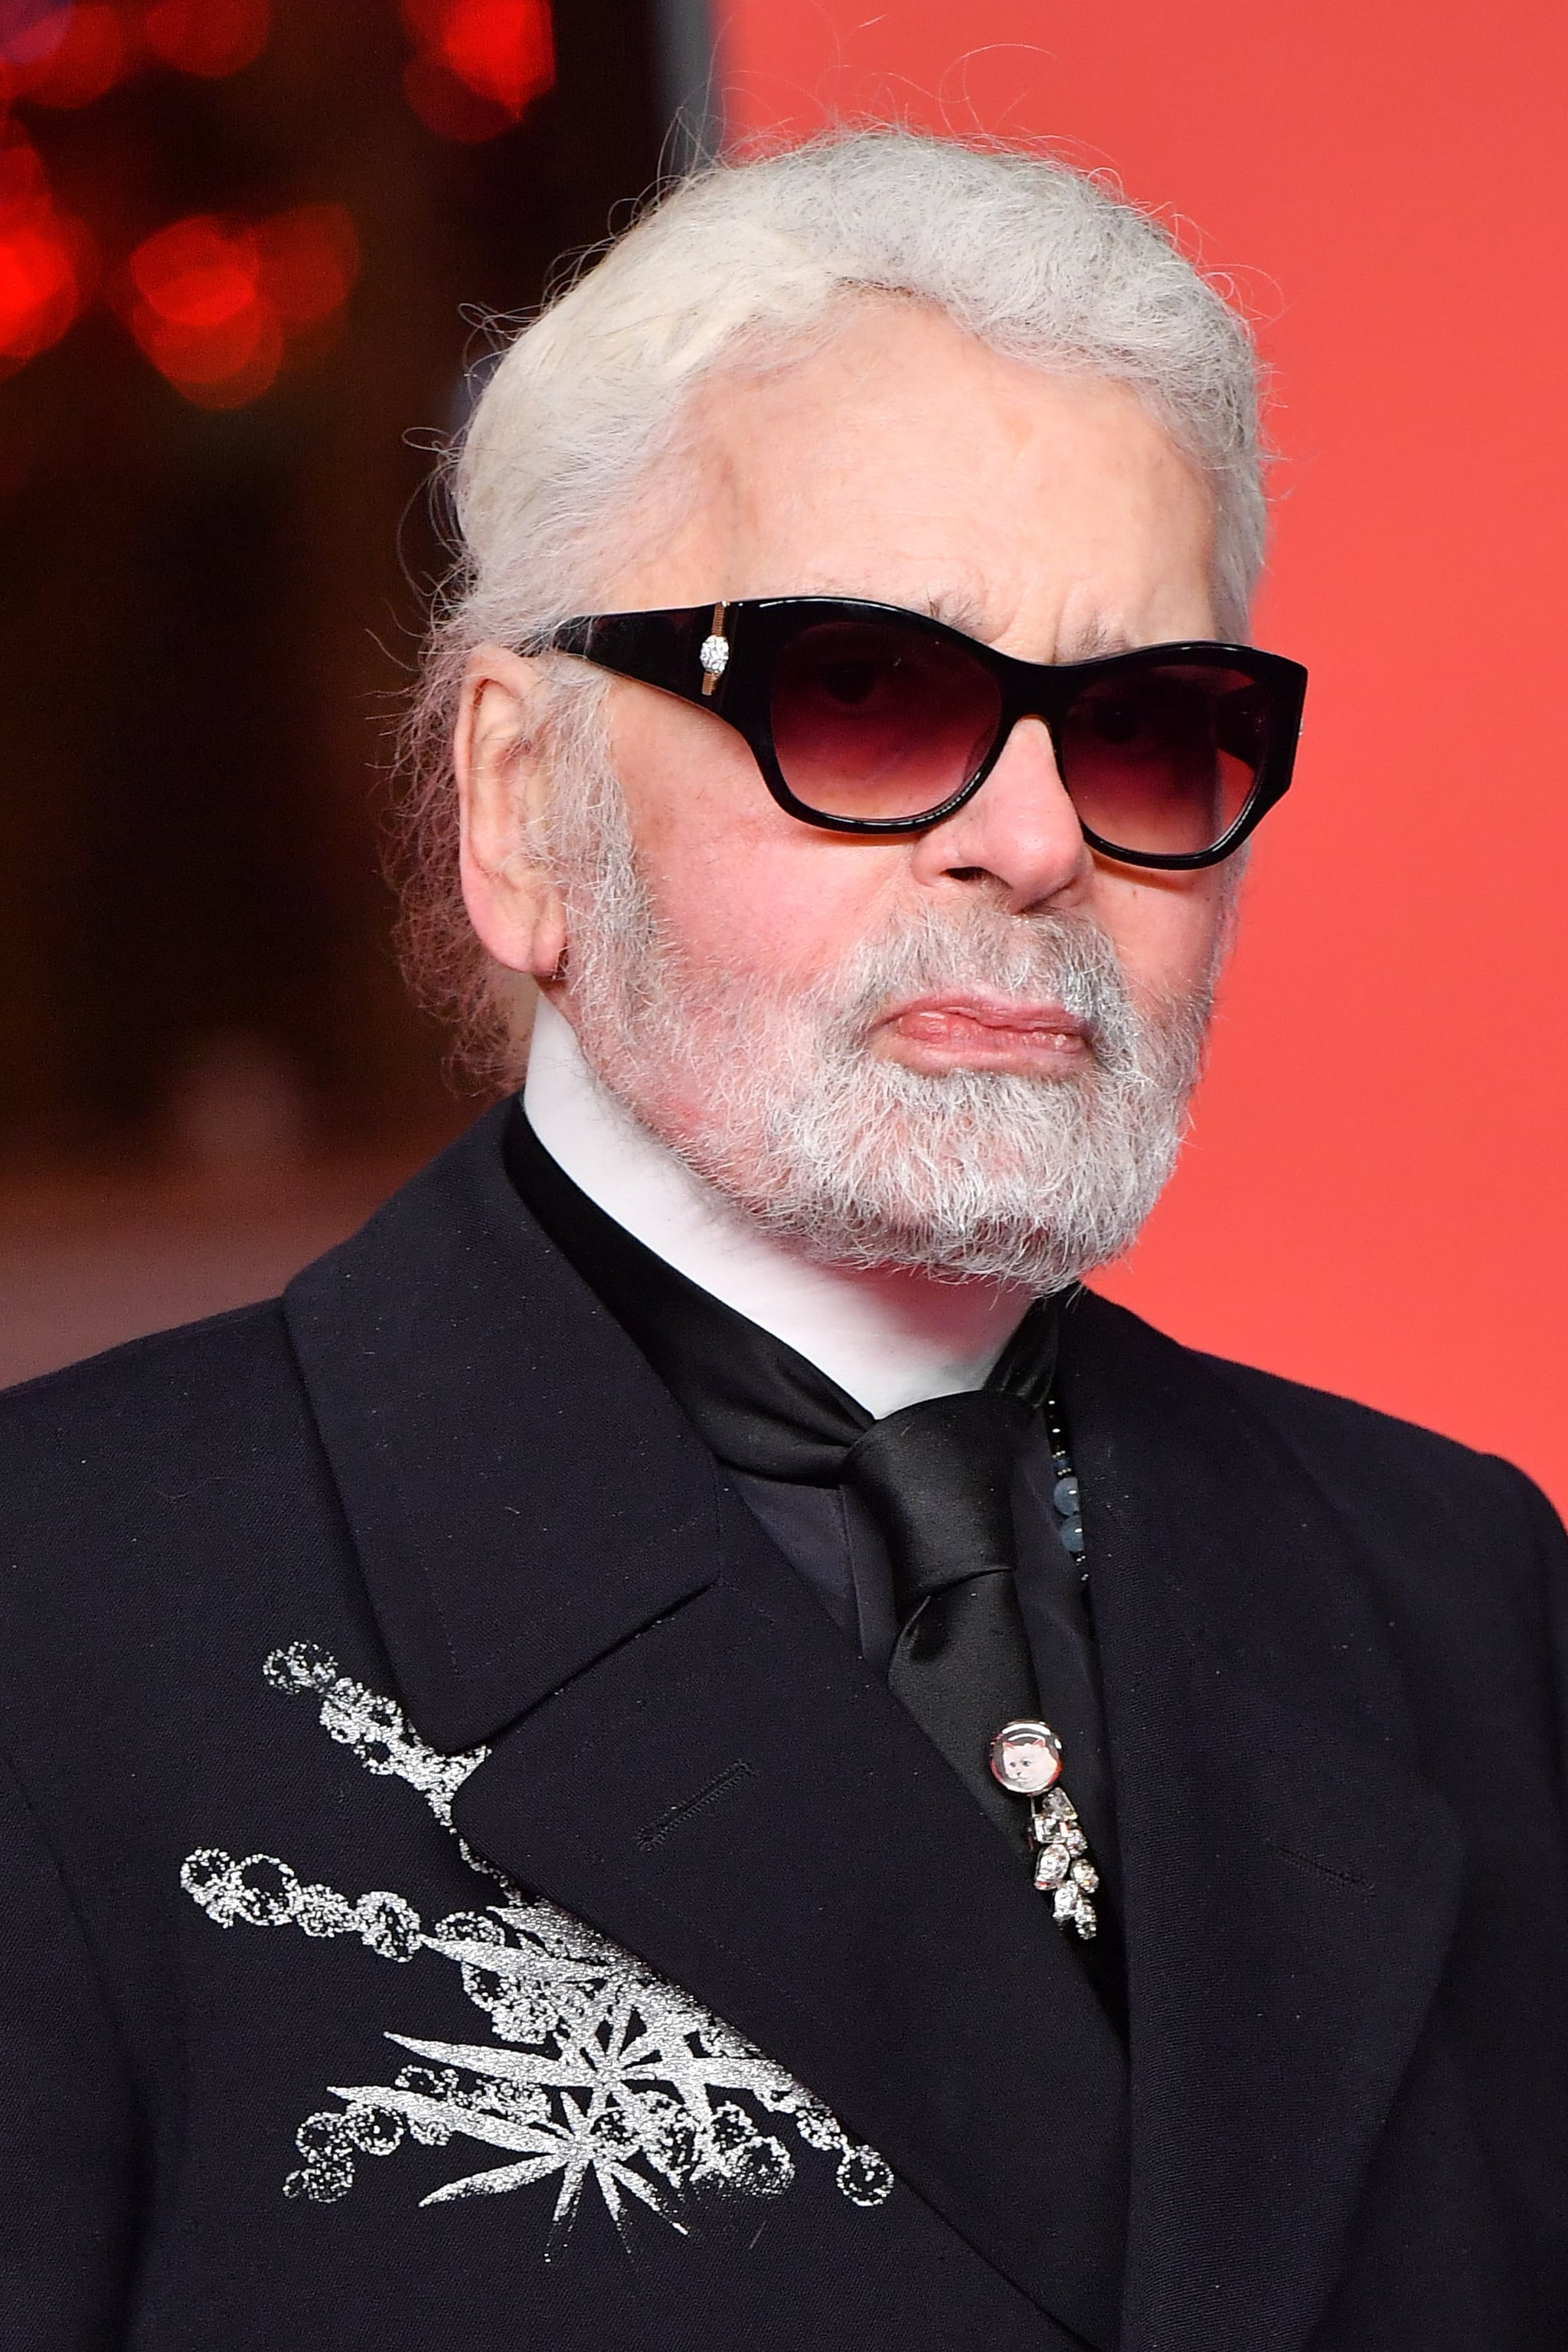 PARIS, FRANCE - NOVEMBER 22:  Karl Lagerfeld attends the Christmas Lights Launch On The Champs Elysees on November 22, 2018 in Paris, France.  (Photo by Stephane Cardinale - Corbis/Corbis via Getty Images)